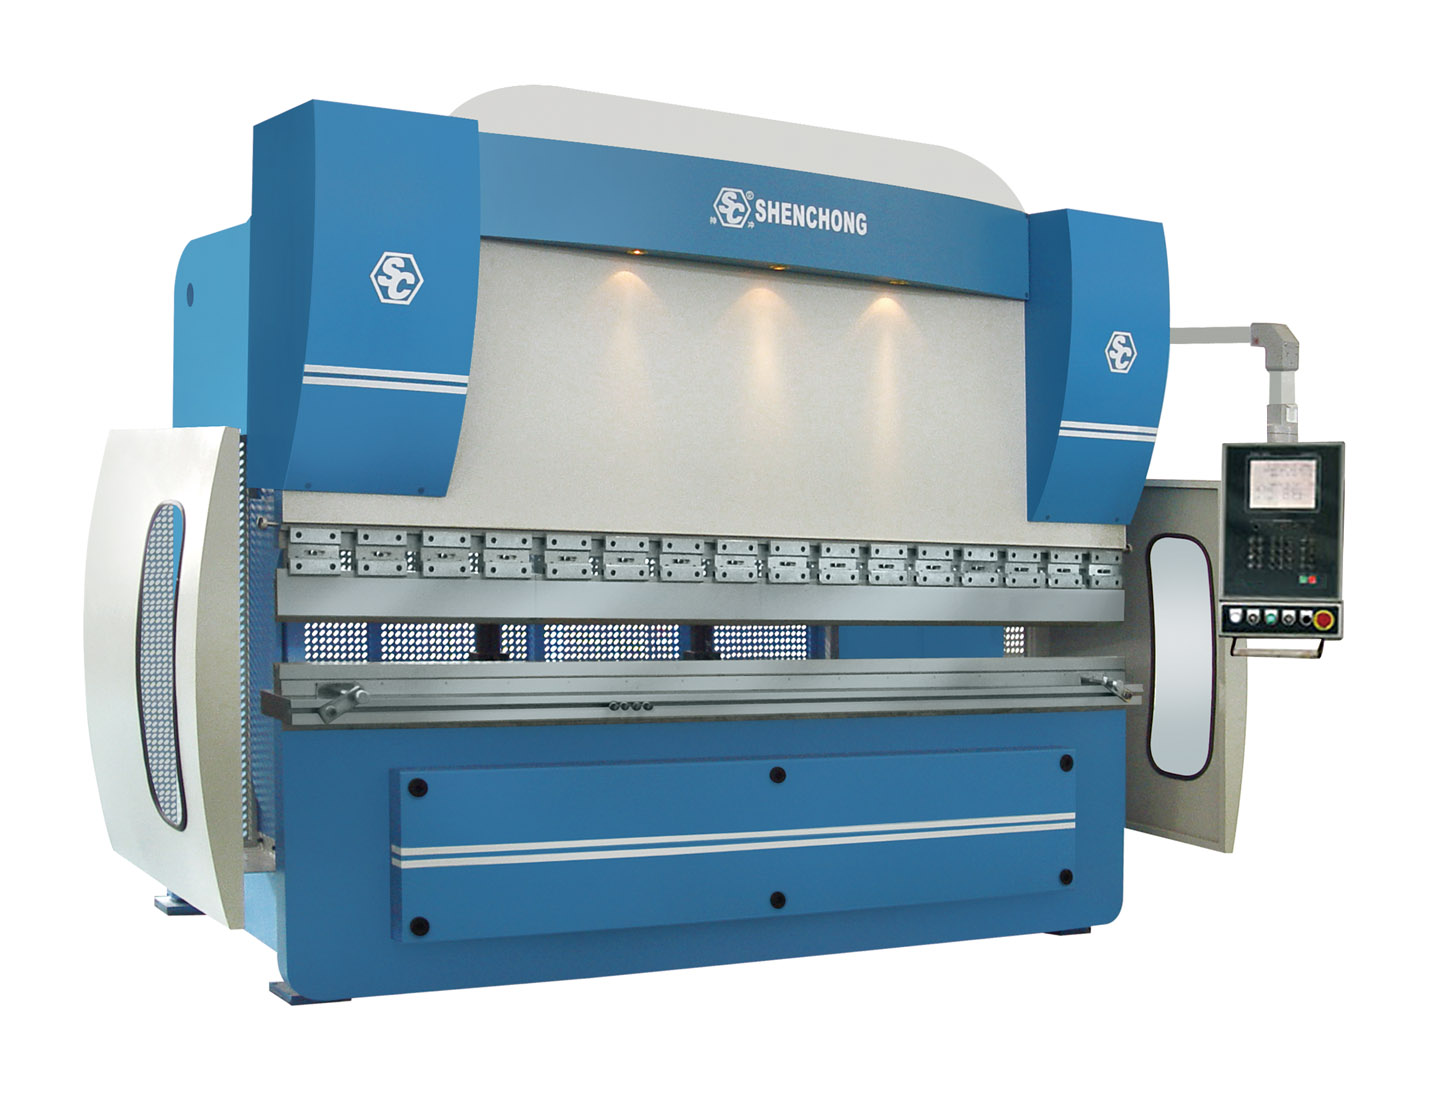 CNC hydraulic press brake 200T3100 DNC600s for sheet metal fabrication